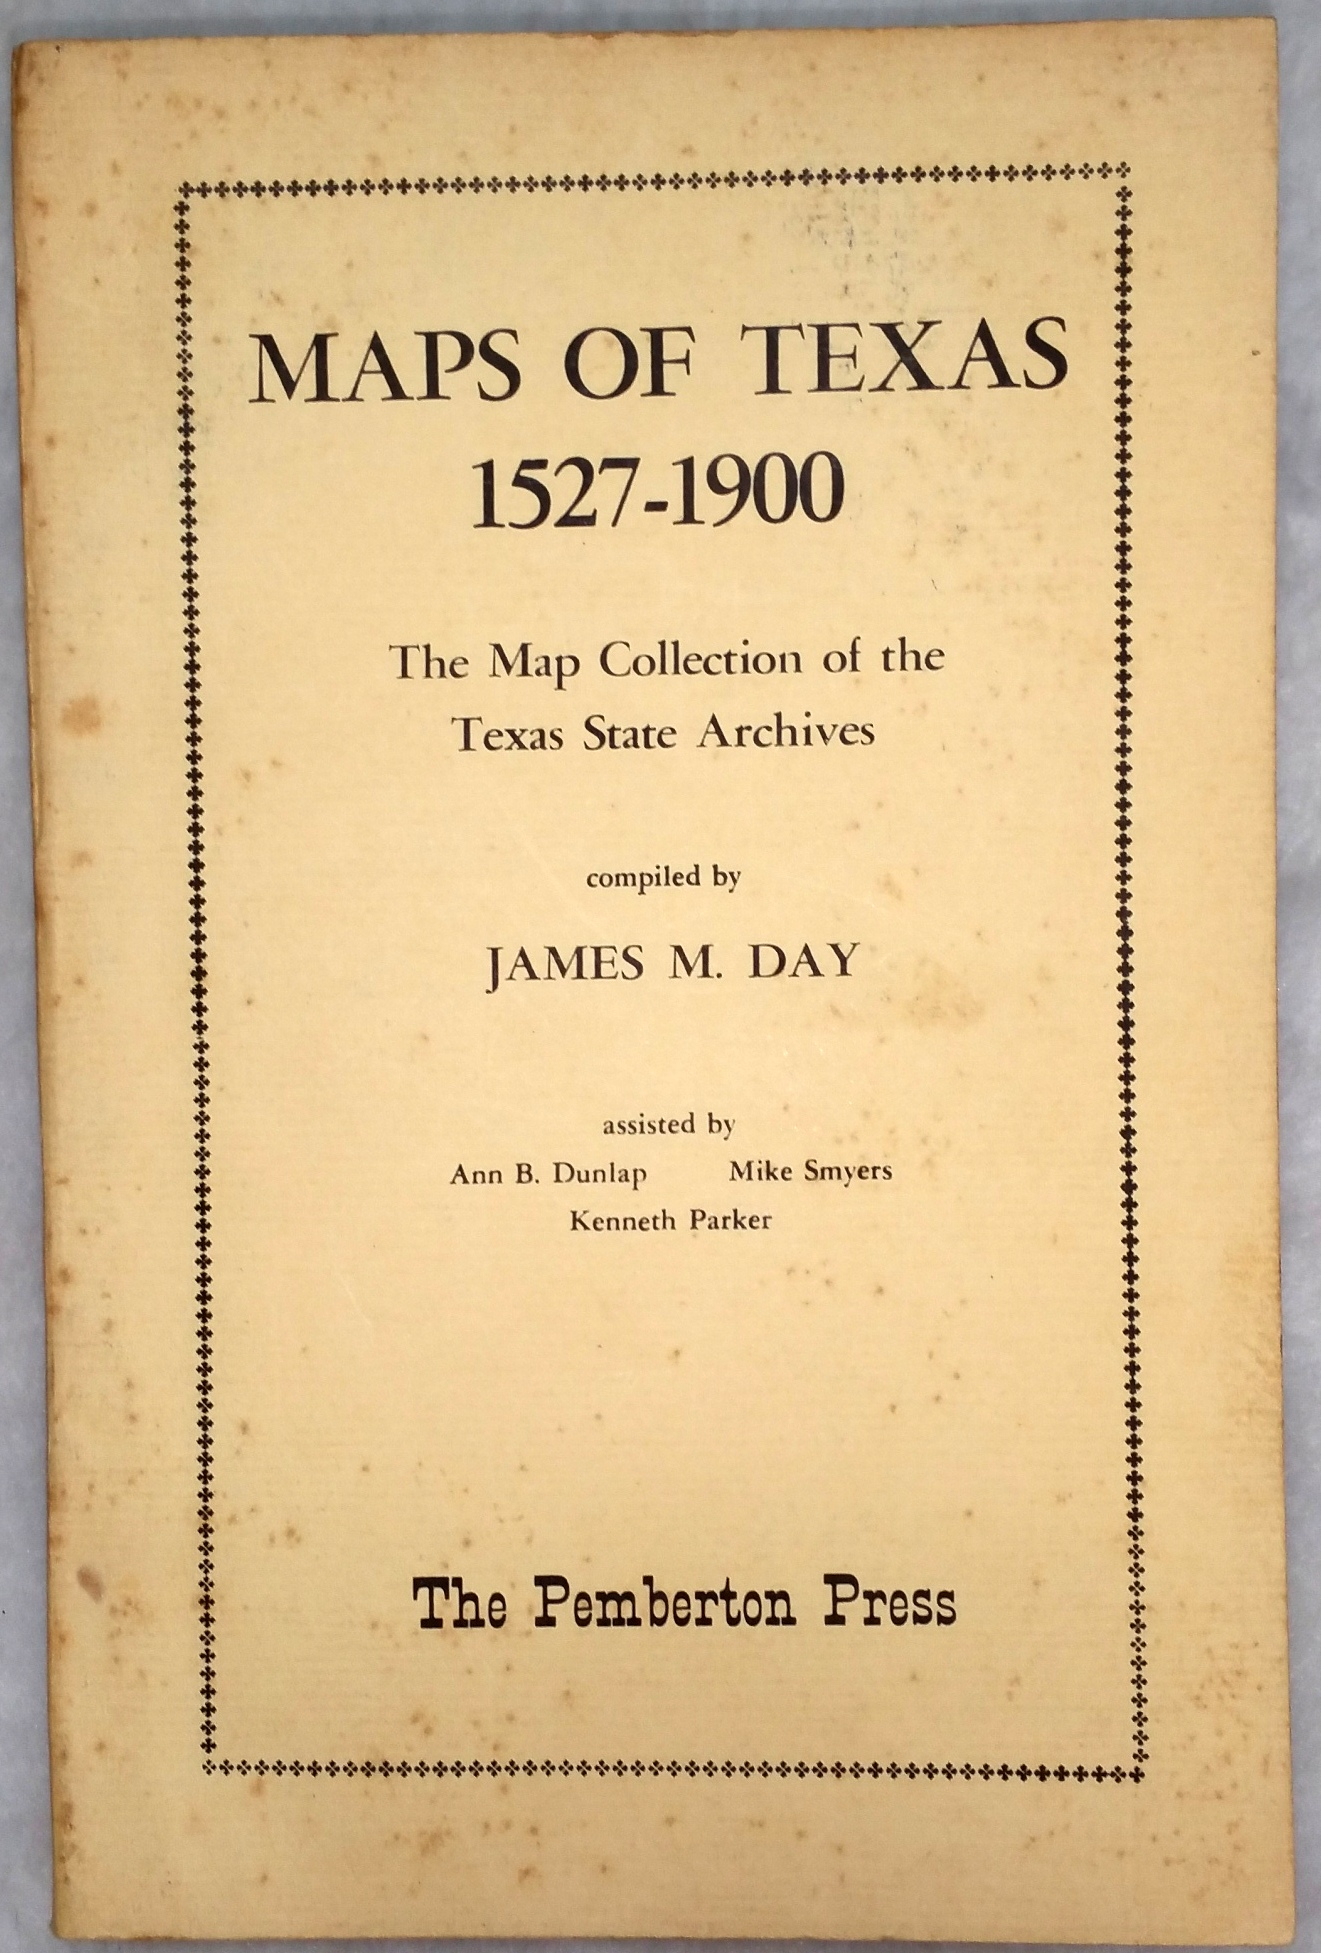 Image for Maps of Texas 1527 - 1900  The Map Collection of the Texas State Archives